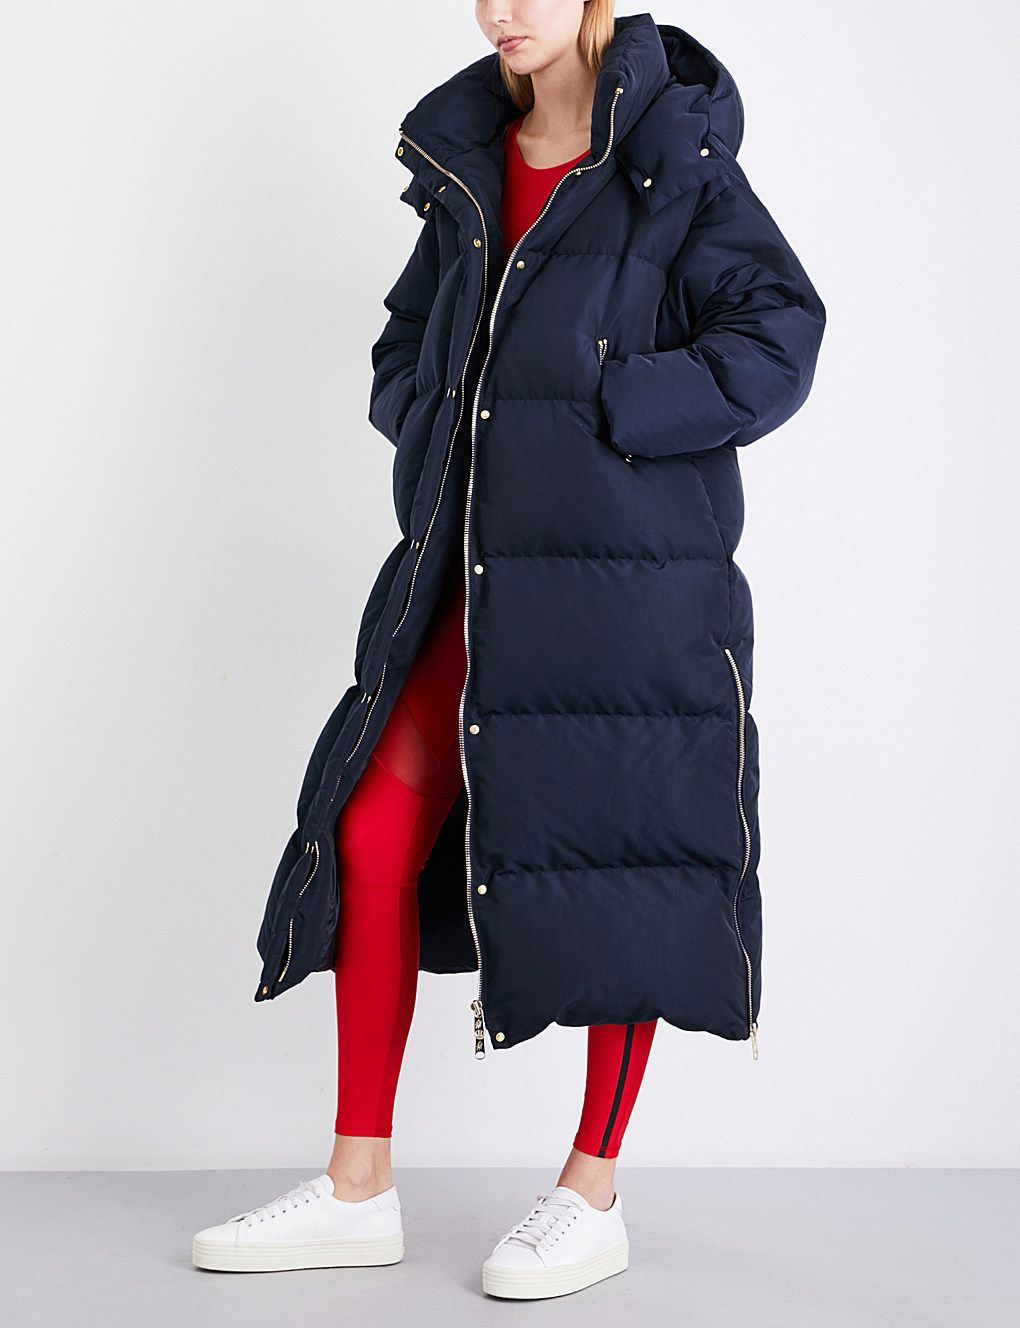 a6eef2af7 Tommy Hilfiger x Gigi Hadid oversized padded hooded shell coat ...